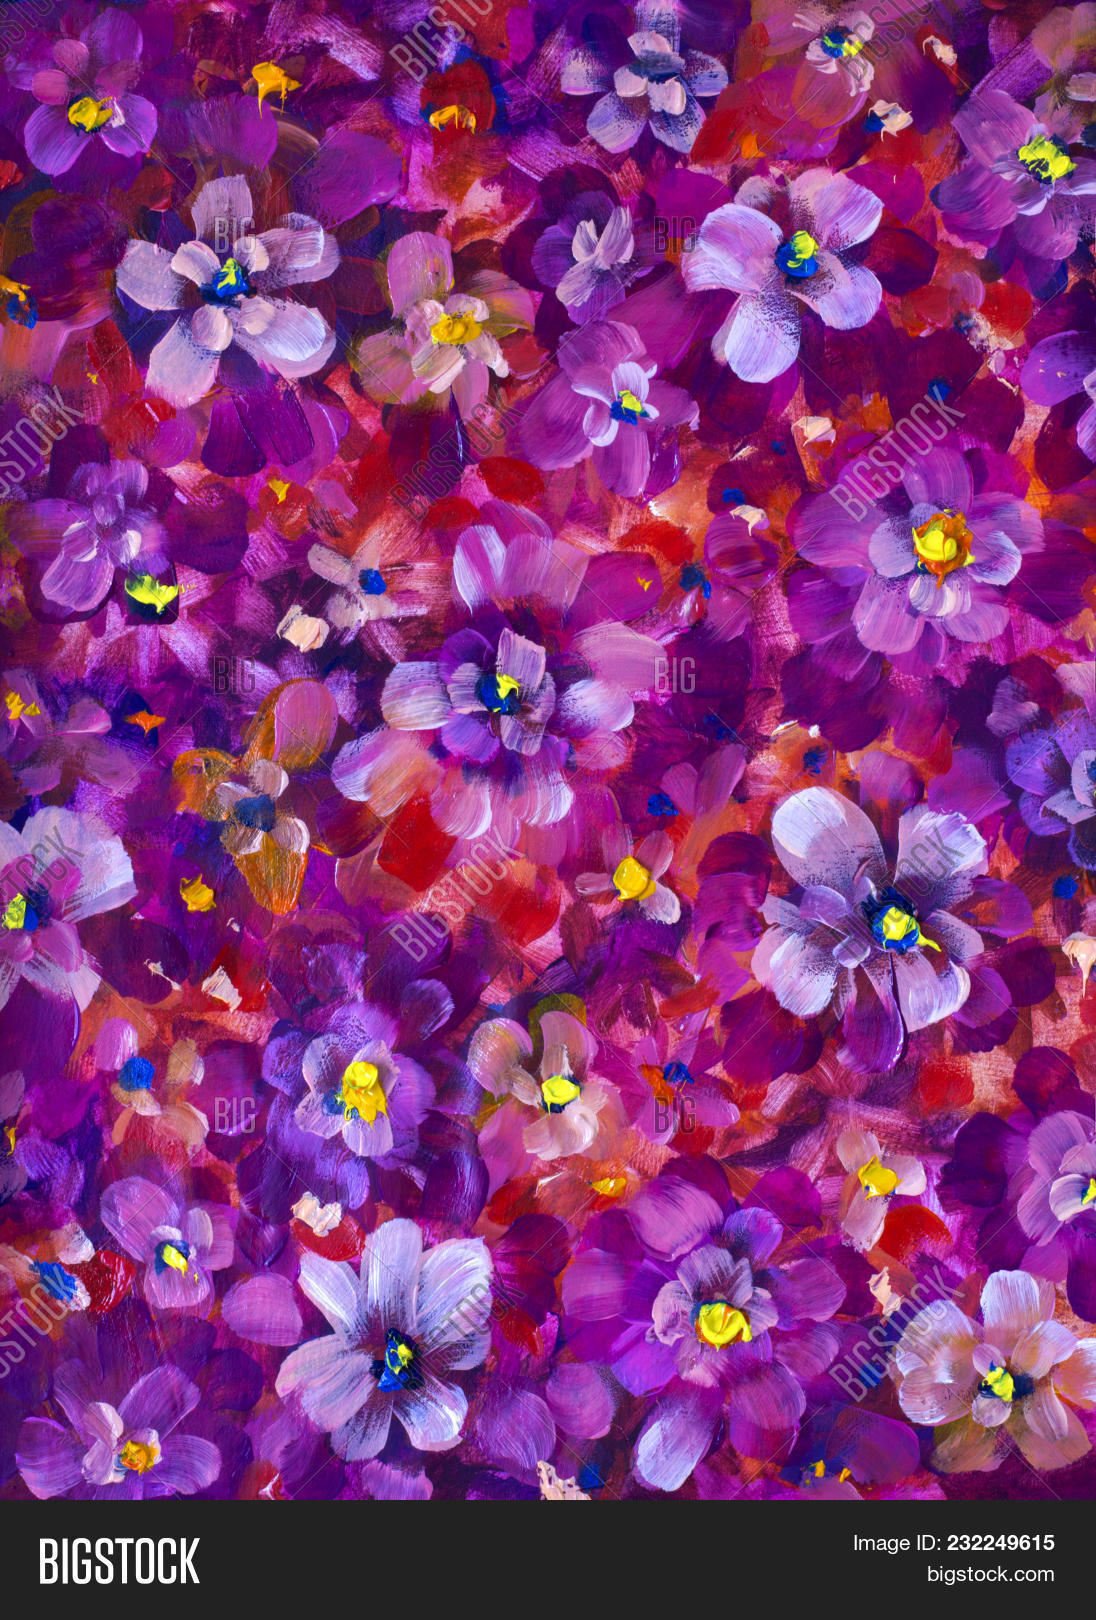 Red Violet Flowers Image Photo Free Trial Bigstock